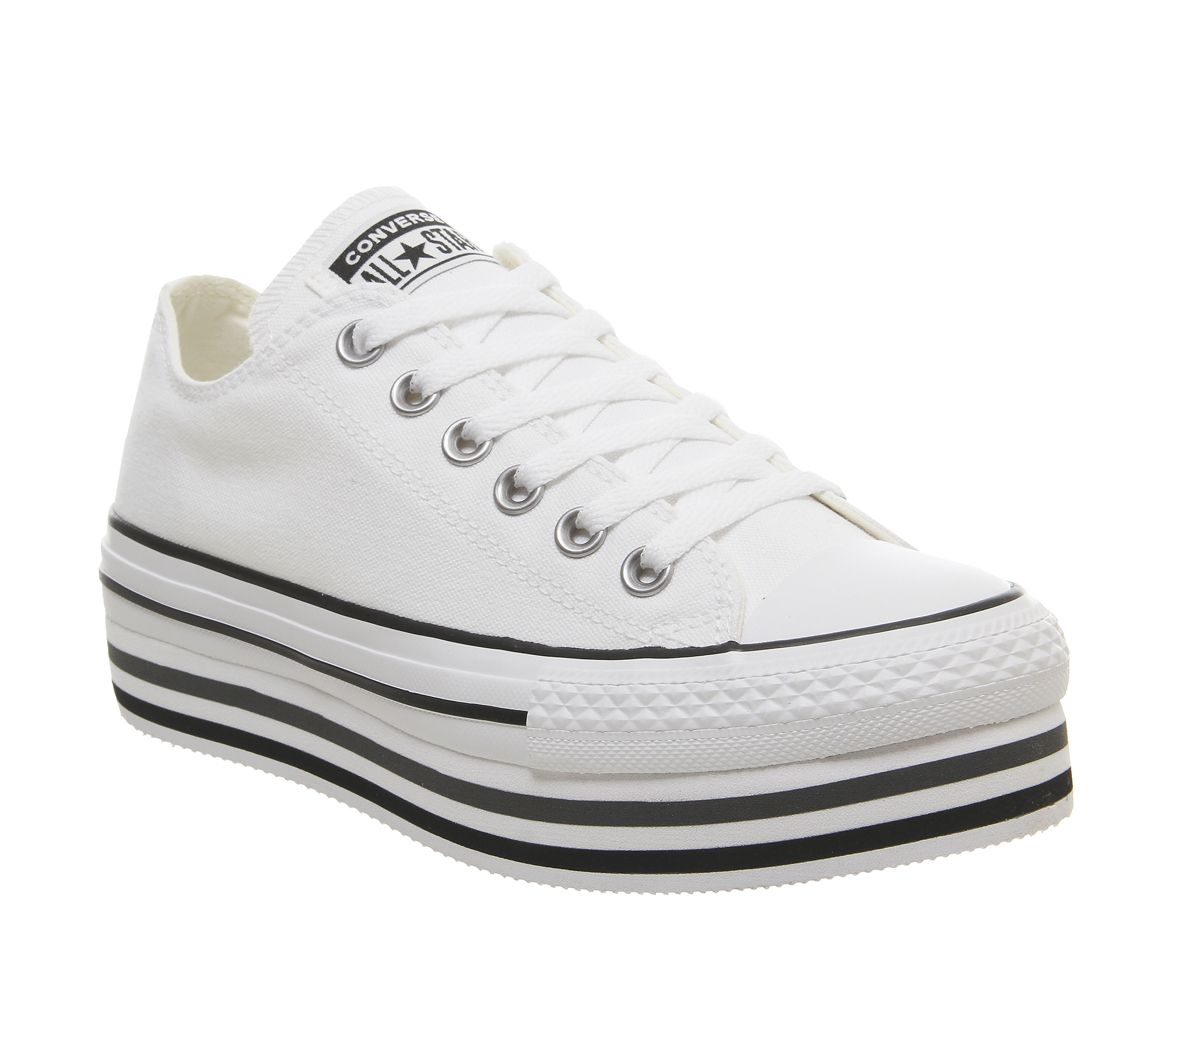 e11cf93d4383 Converse Chuck Taylor Platform Layer Ox Trainers White Black - Hers ...